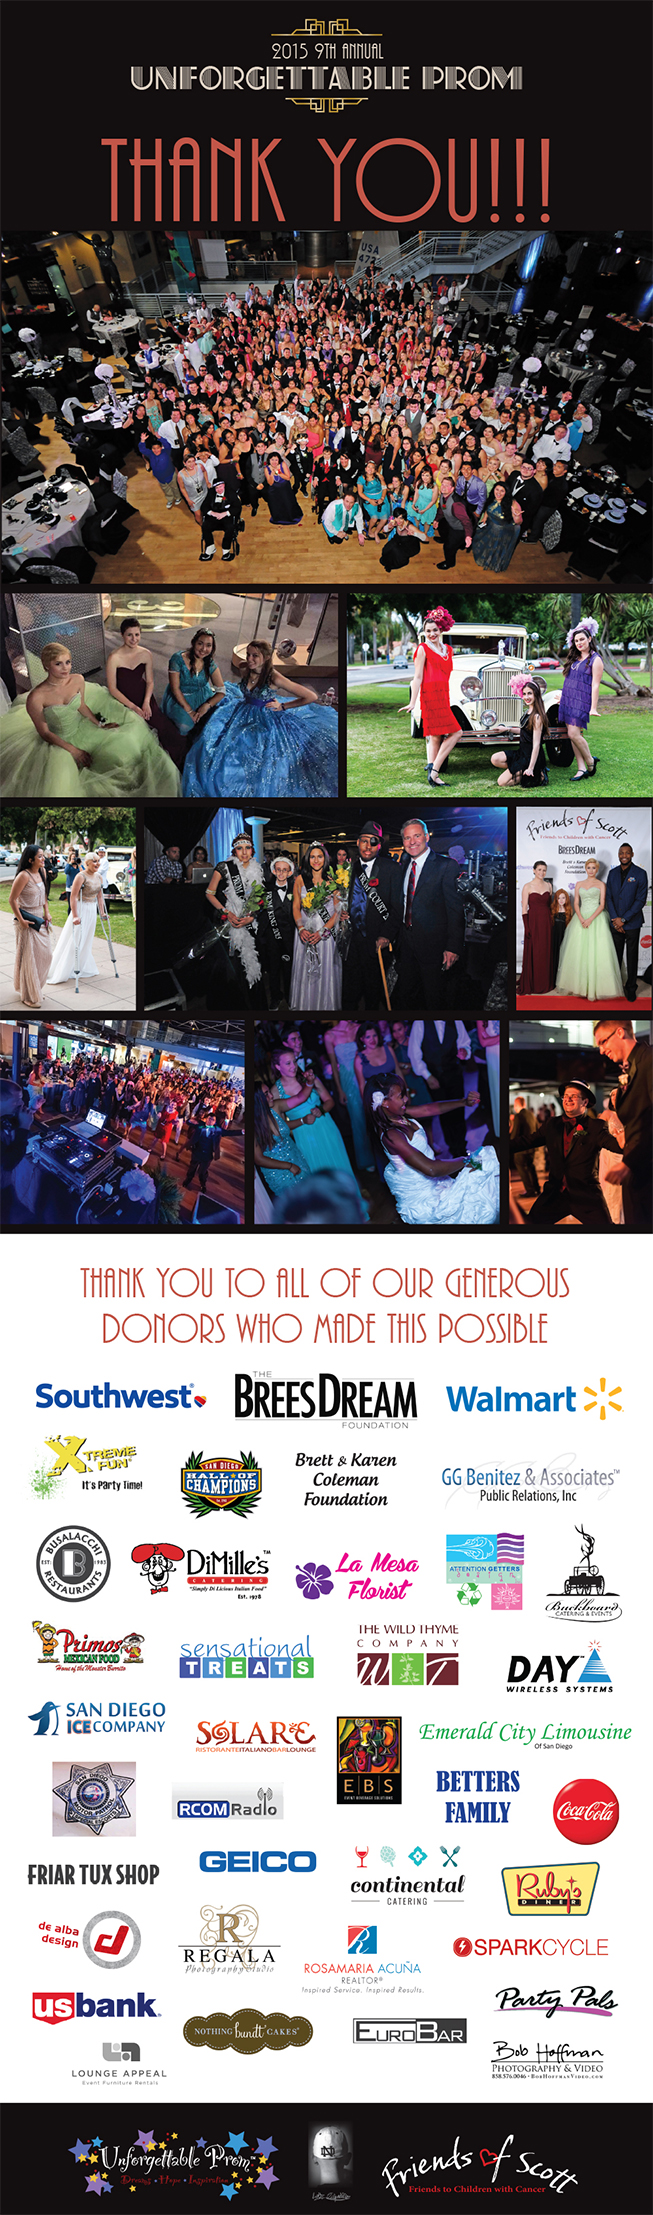 Newsletter 2015 9th Annual Unforgettable Prom :: Thank You!